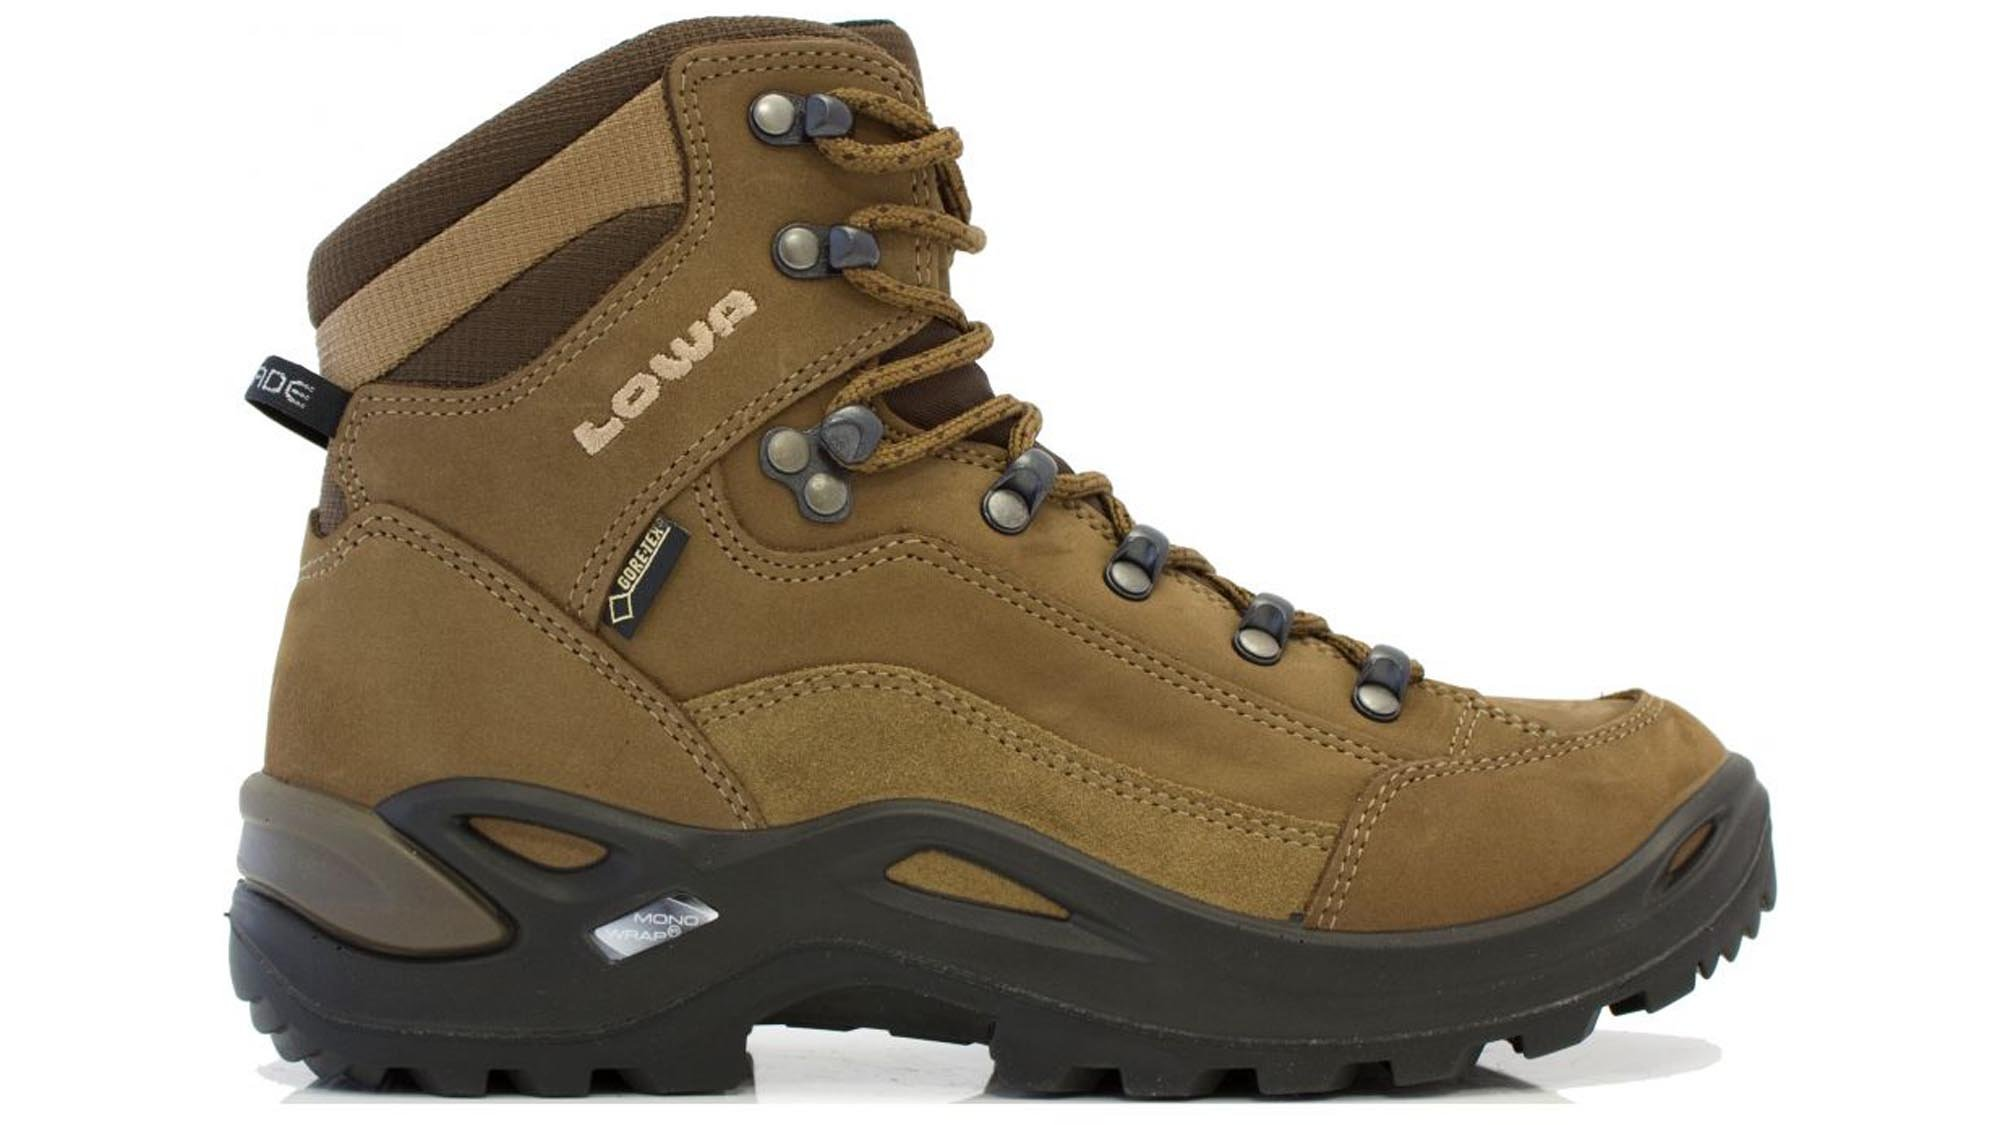 Best hiking boots 2019  Walking boots for men and women from £38 ... 9d975f4b0